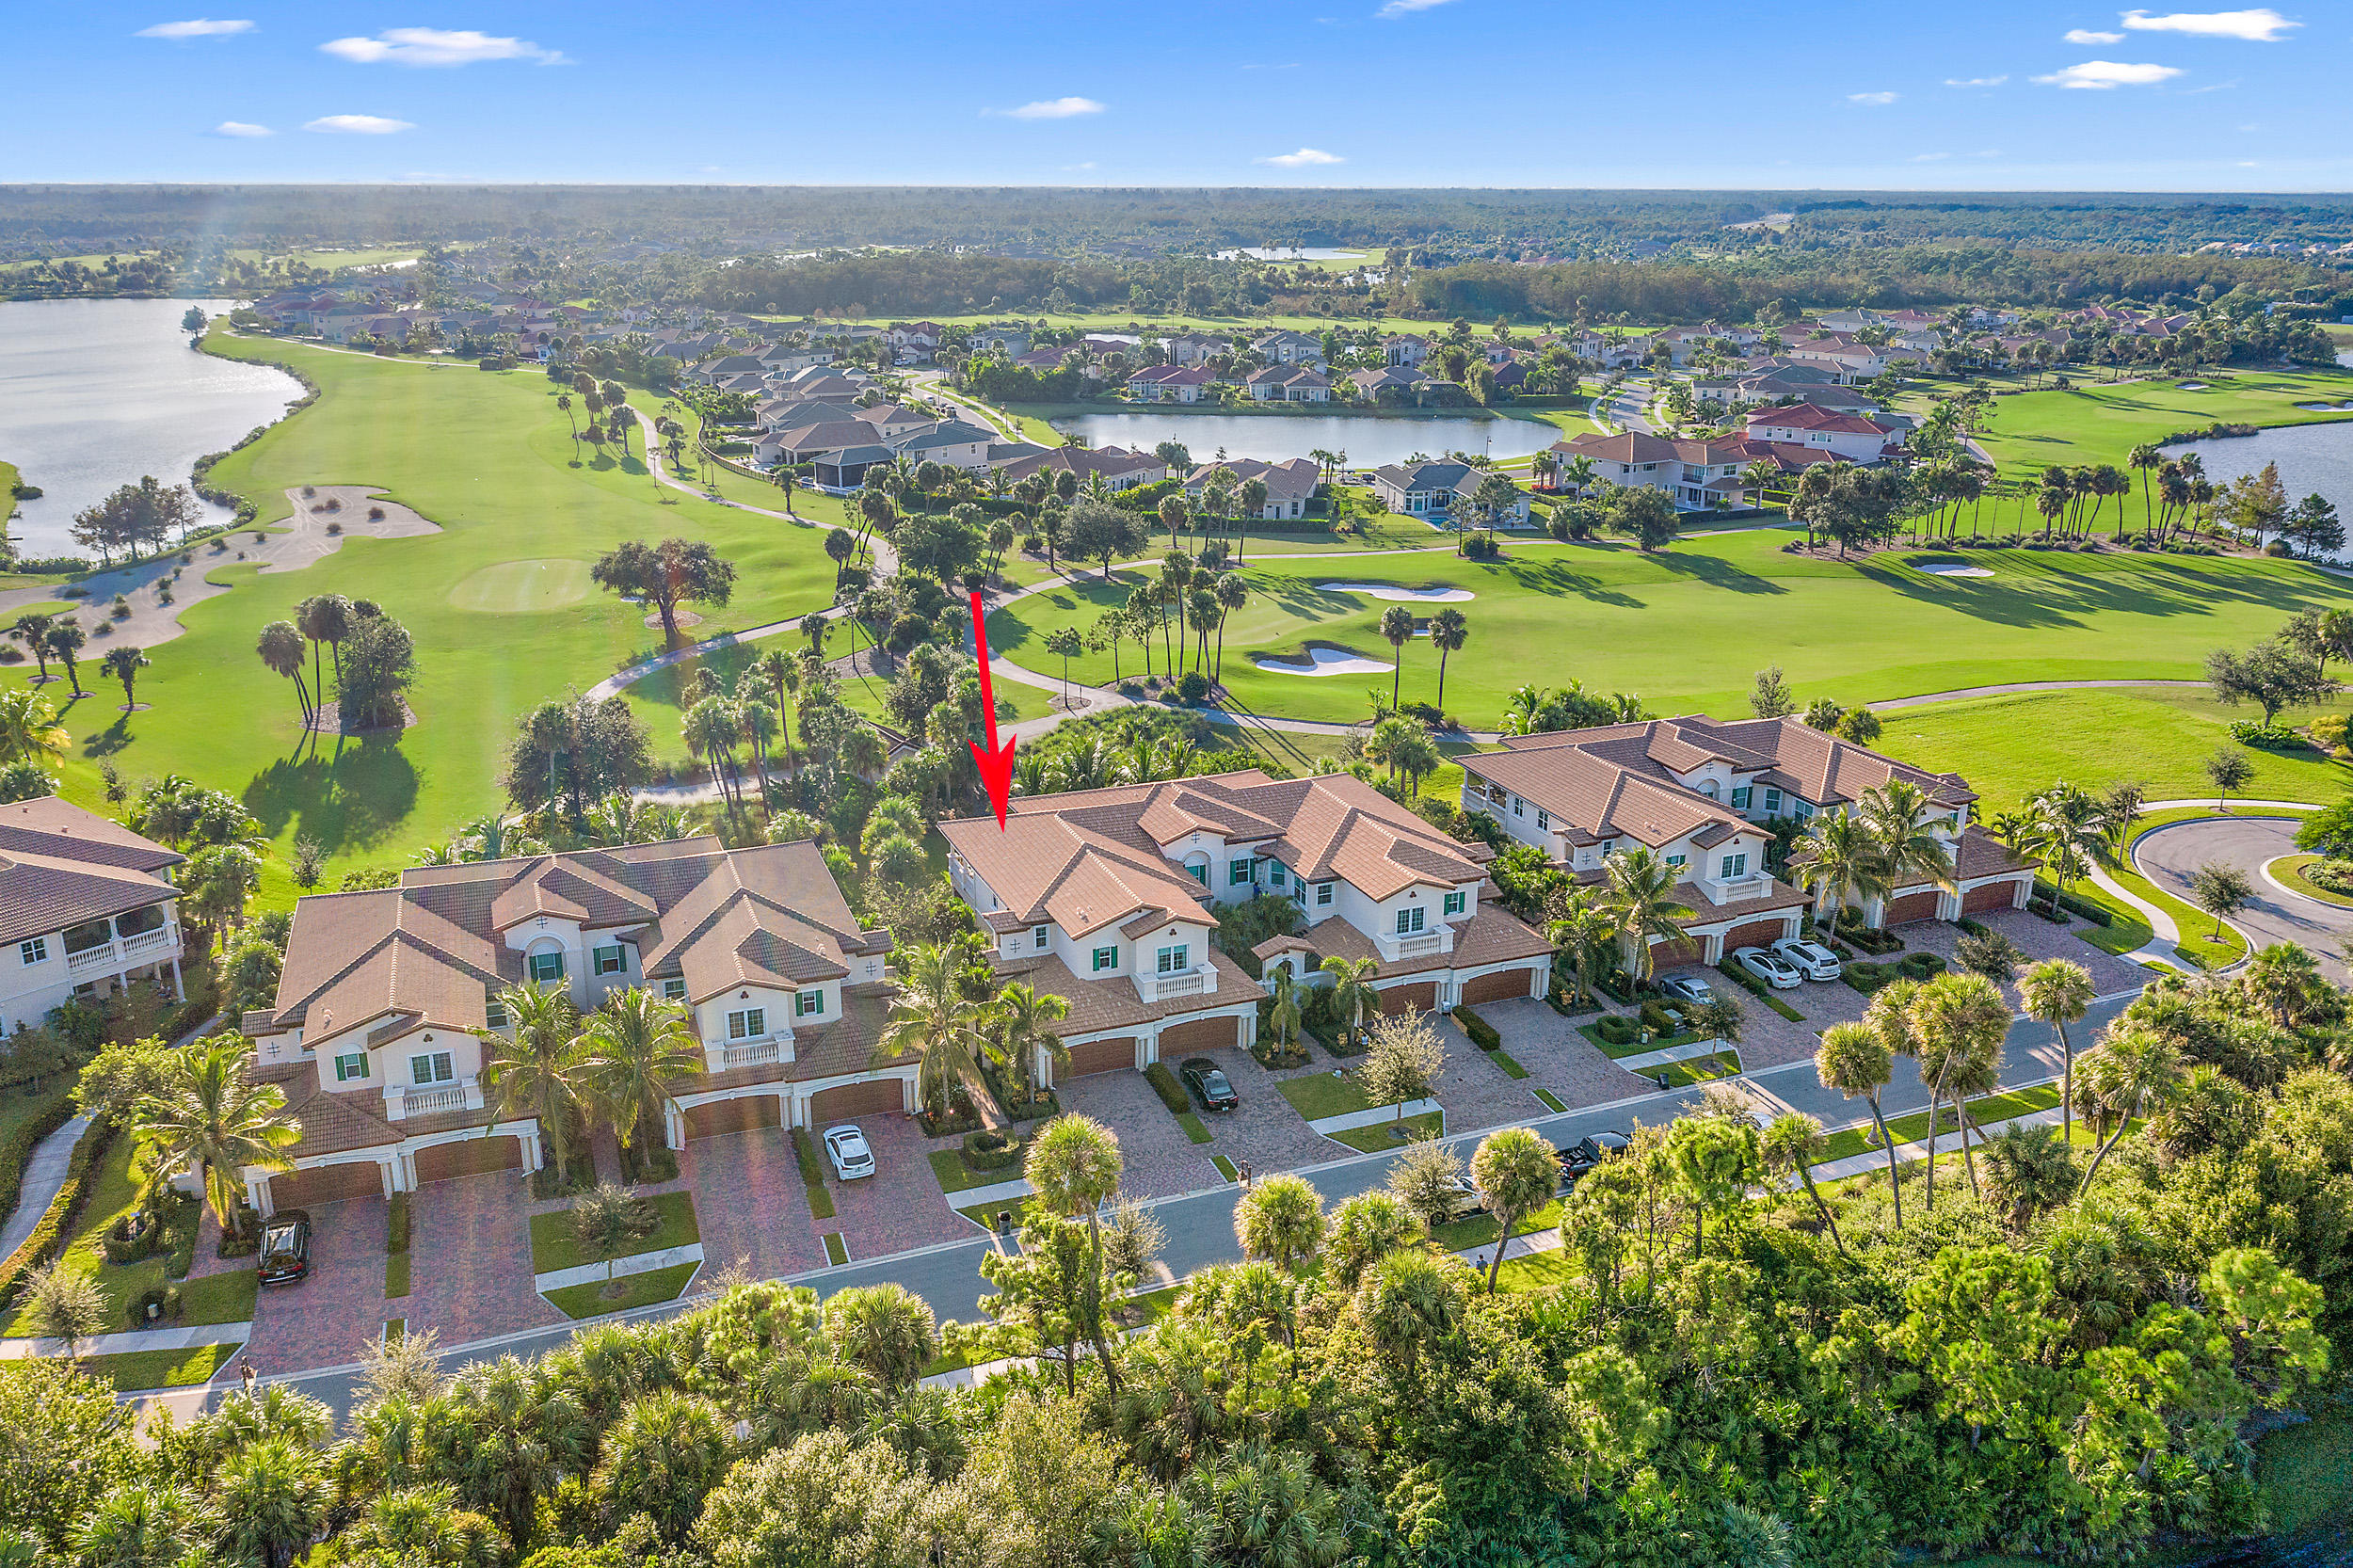 Look no further! This is the GORGEOUS, turnkey South Florida designer home that you have been searching for! Situated toward the end of a cul de sac and overlooking the 7th & 8th holes of the 18-hole Greg Norman Signature golf course of the esteemed Jupiter Country Club, 191 Tresana #157 will blow you away from the moment you enter the front door!The current owner of this magnificent home is an acclaimed interior designer and her professional touch can be felt throughout the entire home with no expenses spared and no spaces overlooked. Featuring beautiful moldings, exquisite ceramic tile flooring (laid on a diagonal), custom window treatments, designer wallpaper, and spectacular light fixtures throughout, this home has been finished to perfection [CLICK TO CONTINUE READING] and is waiting for its new owner. 191 Tresana #157 is a highly sought after, second floor Genova model, which are known for their three full bedrooms and three full bathrooms, PLUS formal dining room, PLUS den or formal living room, and with large wrap around porches. The owner of this Genova model customized her unit with a few unique floor plan modifications that one must see to appreciate, creating more functional living space, without compromising elegance, and truly making this residence one of a kind! Walk up the property's lushly landscaped pathway and immediately feel at home as you enter this divine home. High ceilings, a gorgeous staircase, two-car garage, and a functional (upgraded) elevator greet you on the ground level, while the home's elegant entry and sitting room (could be converted to an office) await at the top of the stairs. The upper level is home to the main living spaces with a functional, open floor plan anchored by a large chef's kitchen -- gas-stove, stainless steel appliances, granite countertops and gorgeous espresso cabinets -- and a formal dining room which is large enough to seat 10 comfortably! The expansive wrap around balcony can be conveniently accessed from two areas within the main living space - from the kitchen or the living room, providing the perfect flow for entertaining! Enjoy Florida's finest cotton-candy sunsets from your private balcony overlooking the tranquil golf course, sipping your wine and living your best #Juplife. Both of your new guest bedrooms are generous in size and are on opposite ends of the home, separated from the master bedroom suite - providing perfect privacy and a true split floor plan. With ample storage throughout the home, including a large two-car garage with built-in storage, a large under-staircase hidden closet, and a large laundry room, this home truly has it all! Whether you travel frequently, are purchasing a second home, or are looking for a turnkey home, 191 Tresana #157 is the low maintenance, ready-to-move-in solution for you! Uniquely located off the ONLY exit where both Florida's Turnpike and I95 meet, Jupiter Country Club is a short drive to Palm Beach International Airport, and both Fort Lauderdale and Miami's airports are within 60 and 90 minutes, respectively. Jupiter Country Club is a world-class country club with state-of-the-art amenities and a Signature Greg Norman 18-hole golf course. Featuring (2) resort style pools, (6) Har-Tru tennis courts, bocce ball, formal and casual dining options, a modern fitness center, and a fully stocked golf proshop. 191 Tresana Boulevard is situated in the most PERFECT location - close to where I95 and the Florida Turnpike meet, as well as being just a short drive from the pristine Jupiter beaches, world class shopping, and fine dining of the Palm Beaches, A-rated schools, and a blossoming life sciences & engineering industry. Don't miss the opportunity to live in this Jupiter Country Club masterpiece. Schedule your showing today!